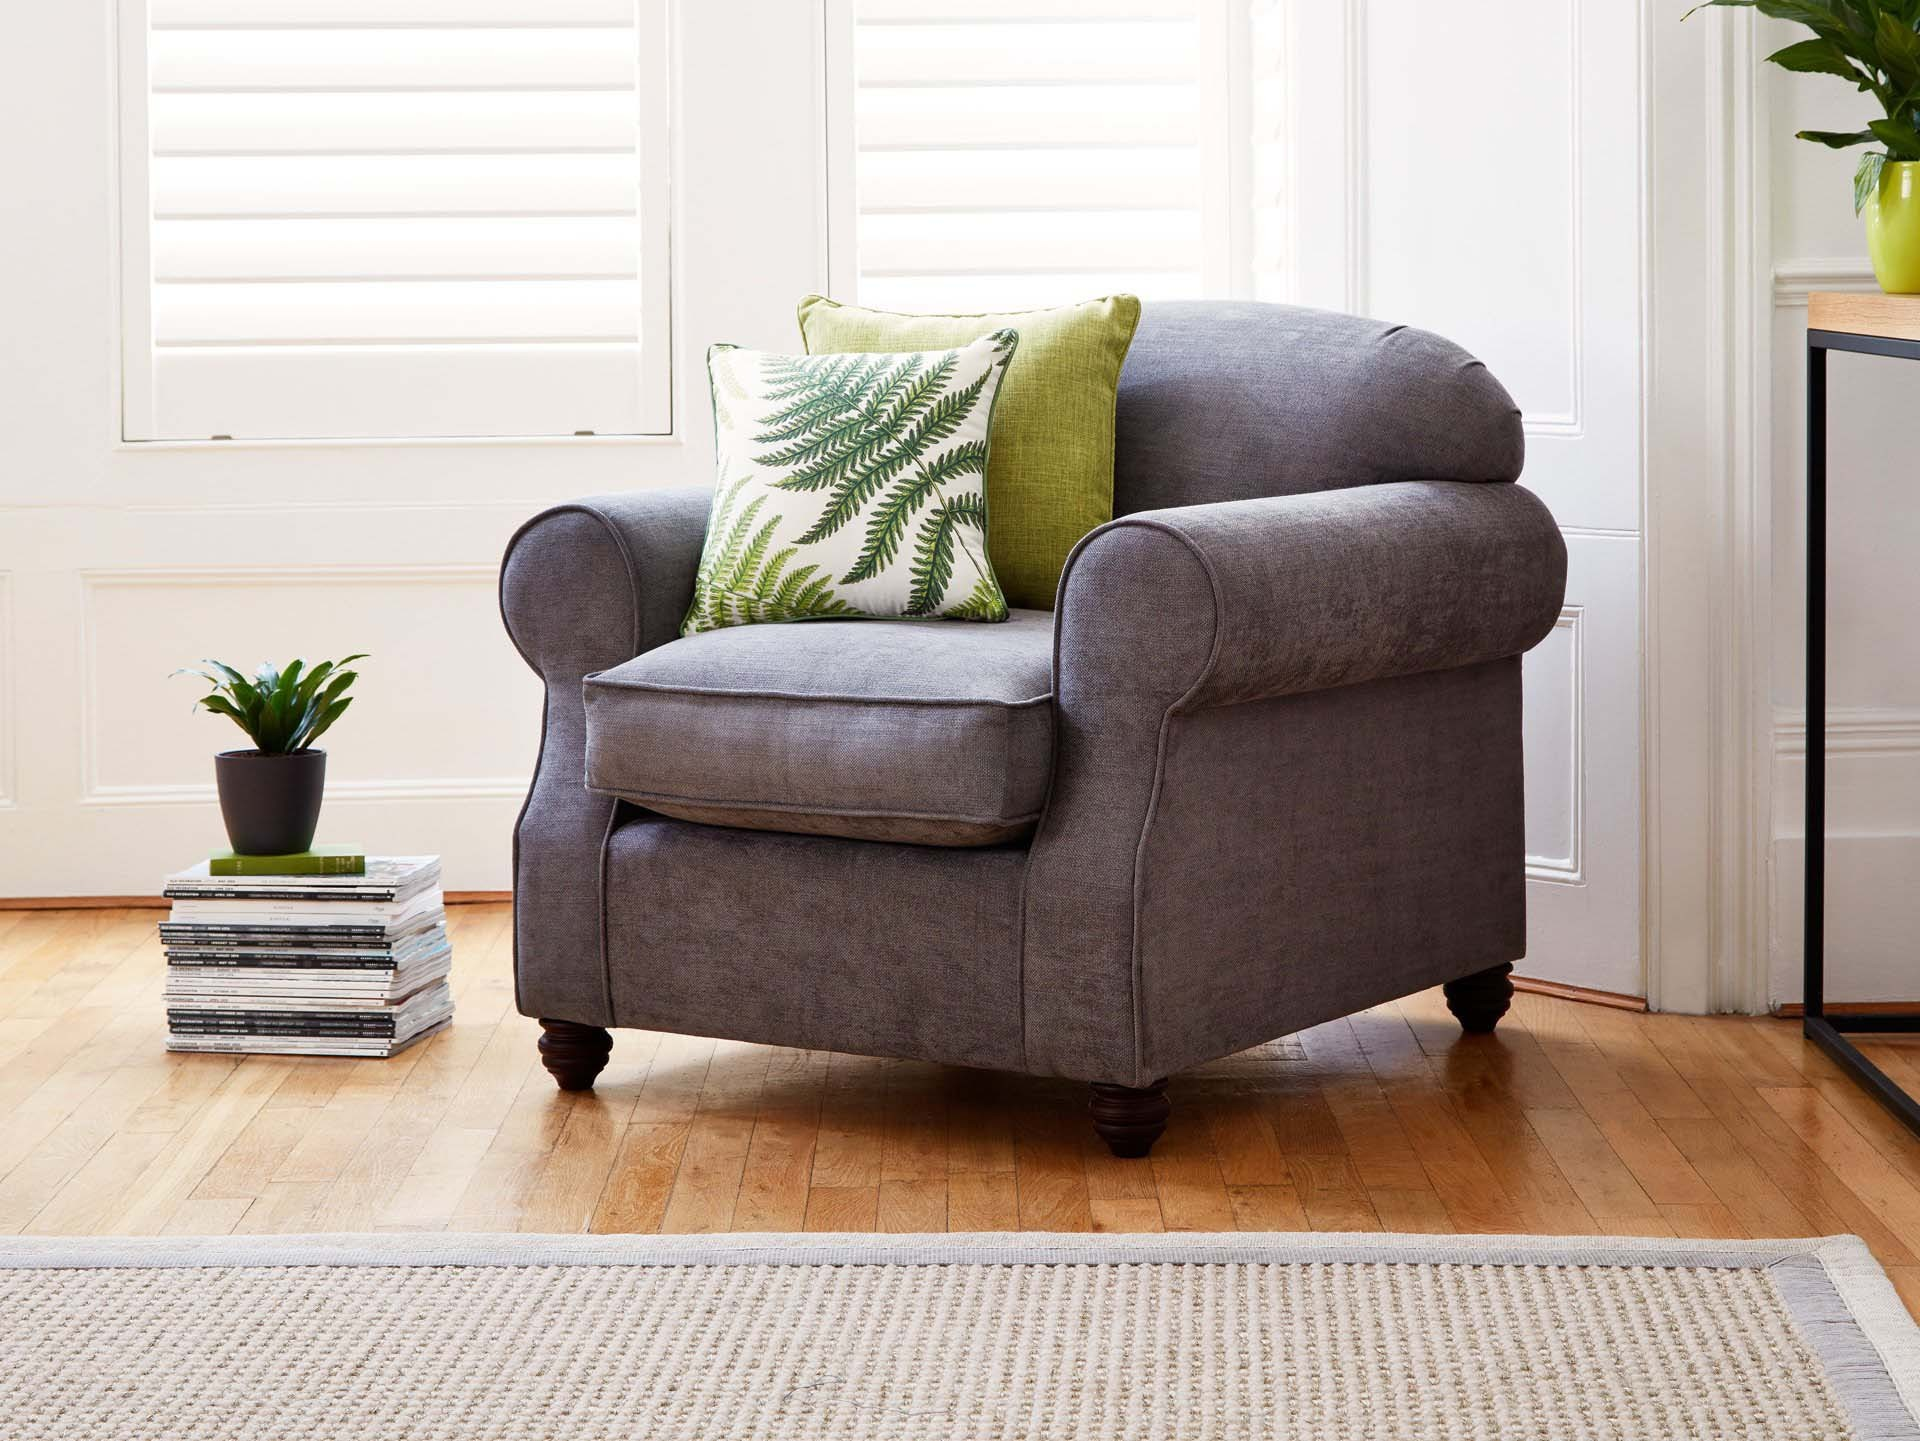 This is how I look in Stain Resistant Linen Cotton Pewter with siliconized hollow fibre or feather-wrapped foam seat cushions